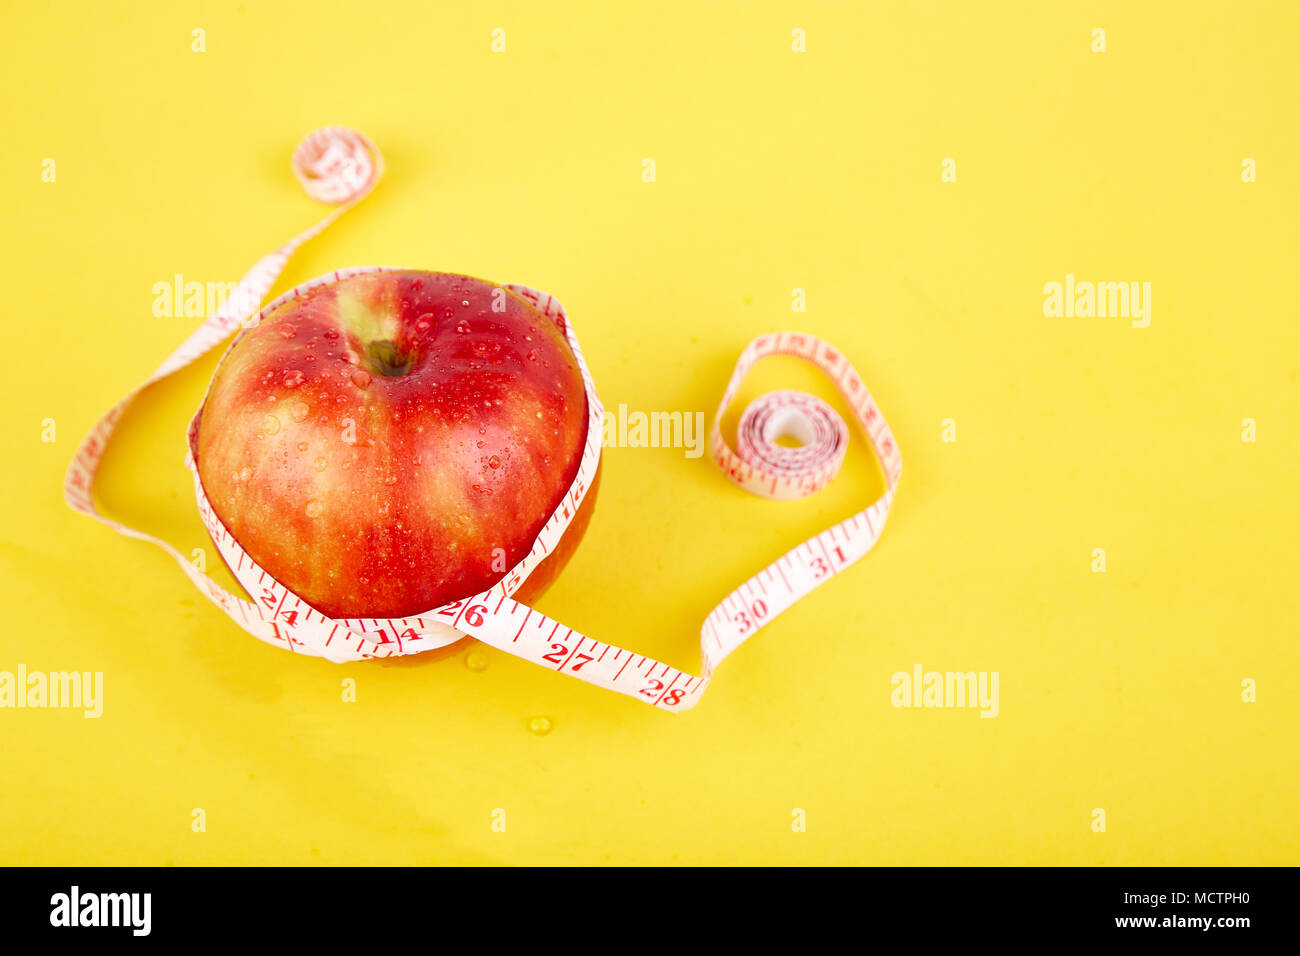 Measuring tape wrapped around a red apple as a symbol of diet on yellow paper background. Weight loss concept. Diet. Dieting concept. Vegan. Clear foo - Stock Image